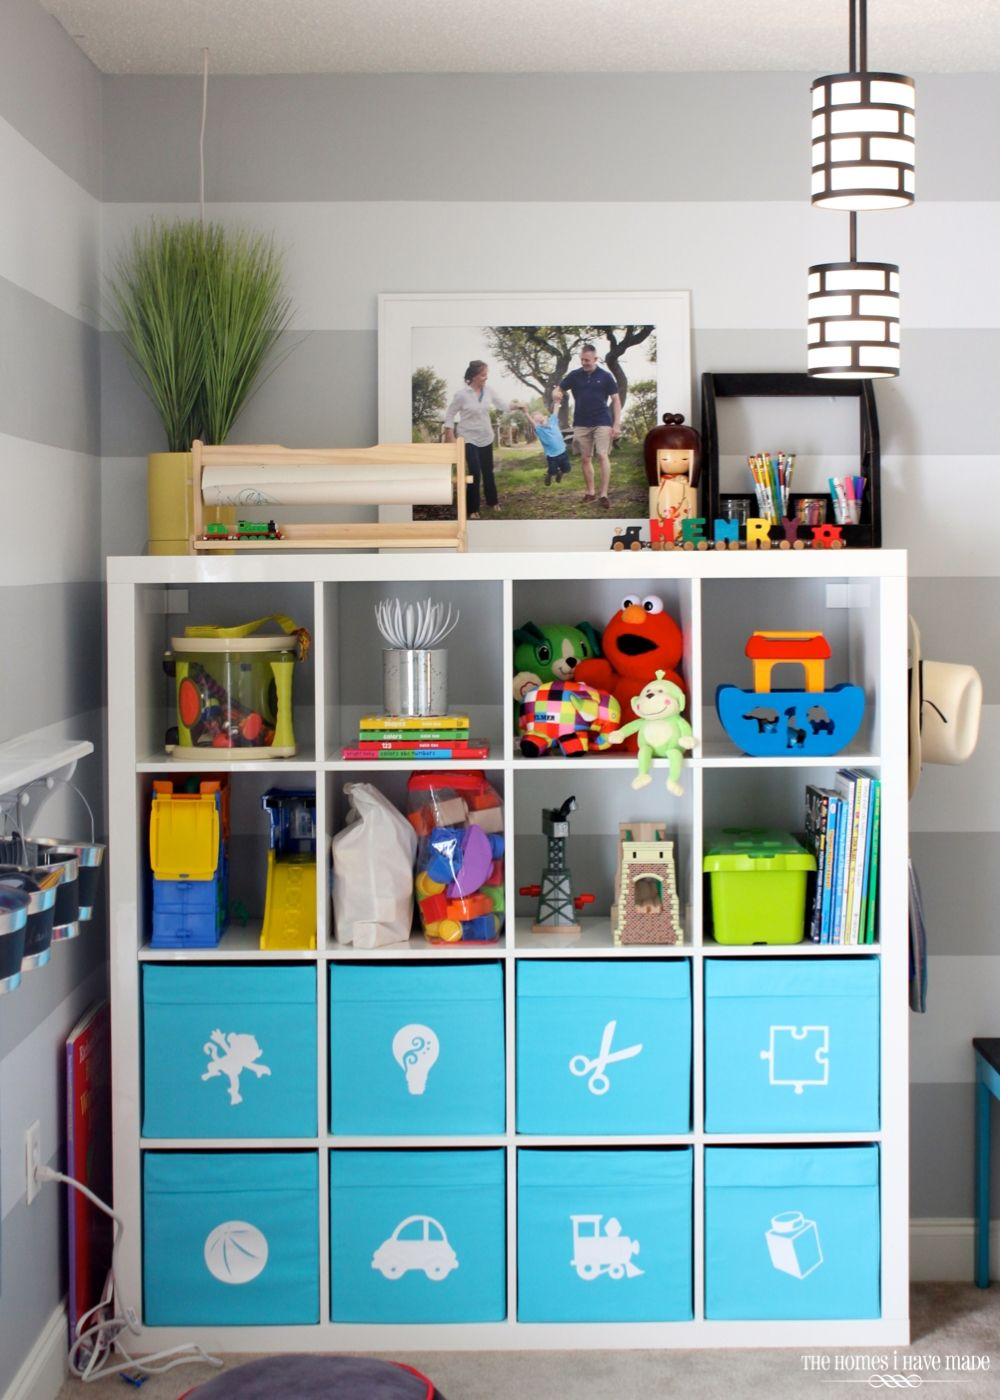 Toy Storage Ikea Expedit Design & Different Ways To Use u0026 Style Ikeau0027s Versatile Expedit Shelf